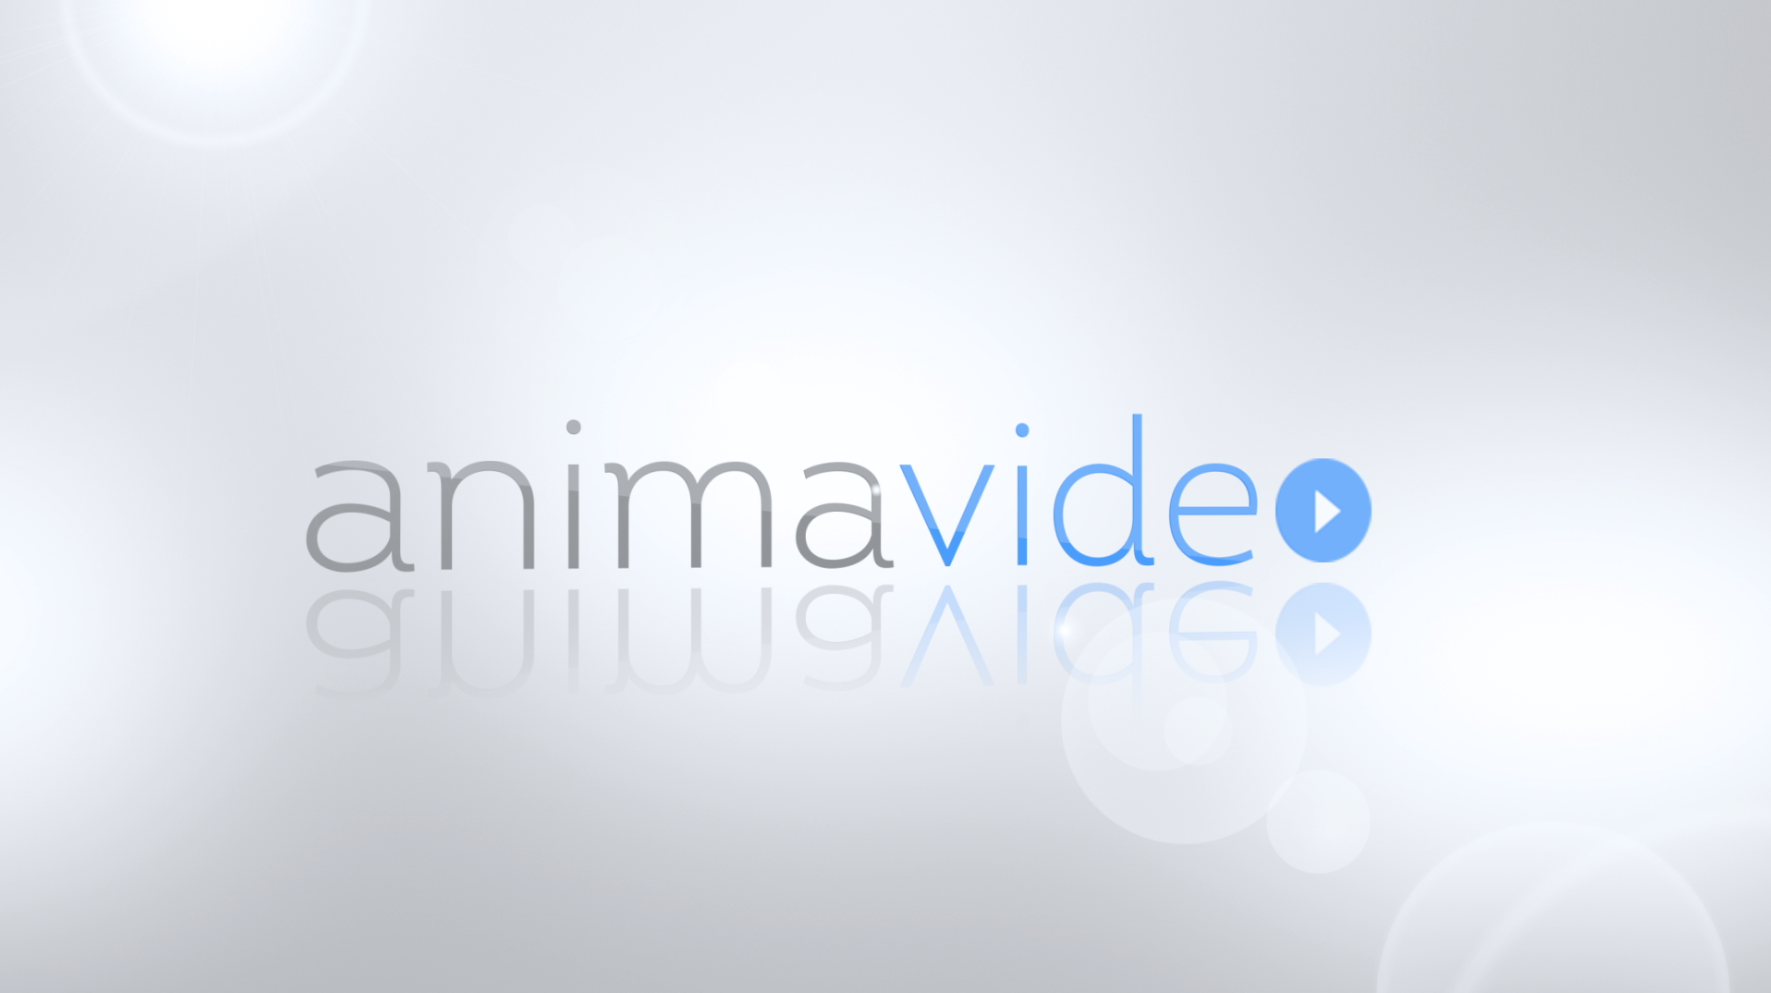 create this elegant logo animation to promote your company, web address info included!